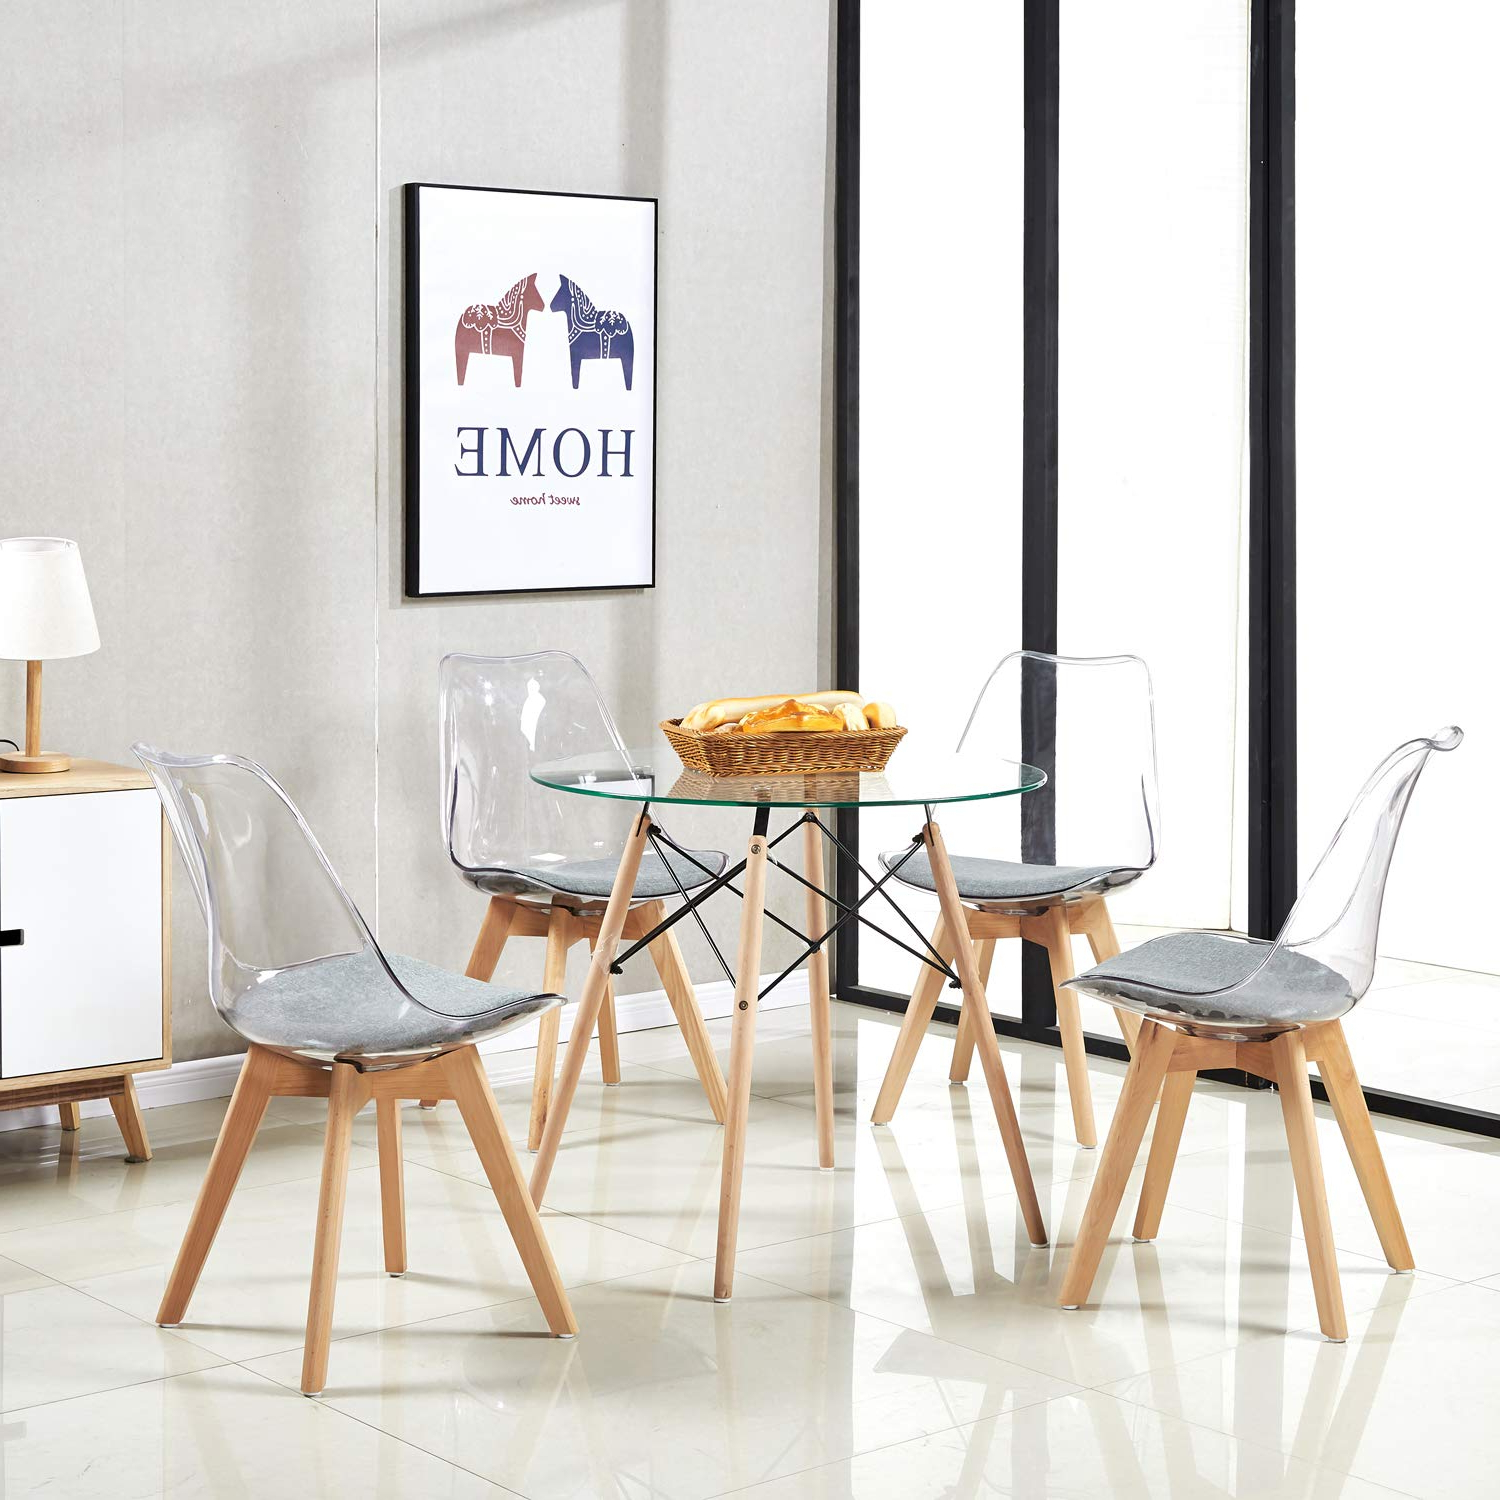 Details About 2/4 X Retro Dining Chairs And Glass Dining Table Round Modern Coffee Table For Popular Retro Round Glasstop Dining Tables (View 10 of 30)